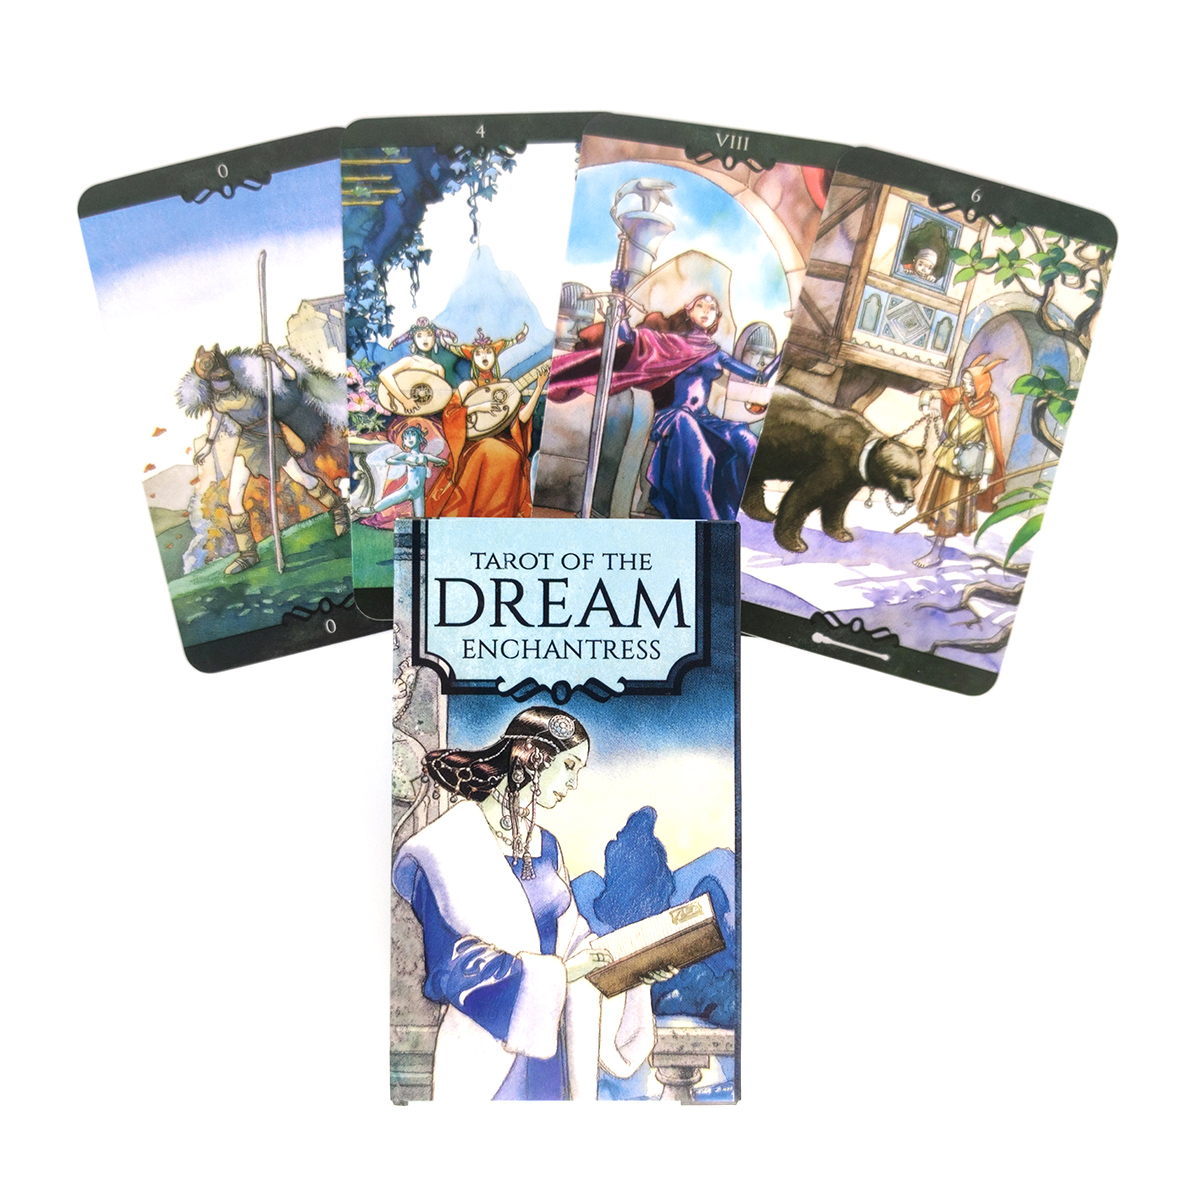 2021 New The Dream Enchantress Tarot Cards Deck And PDF Guidance Divination Entertainment Parties Board Game 78 PCS/Box